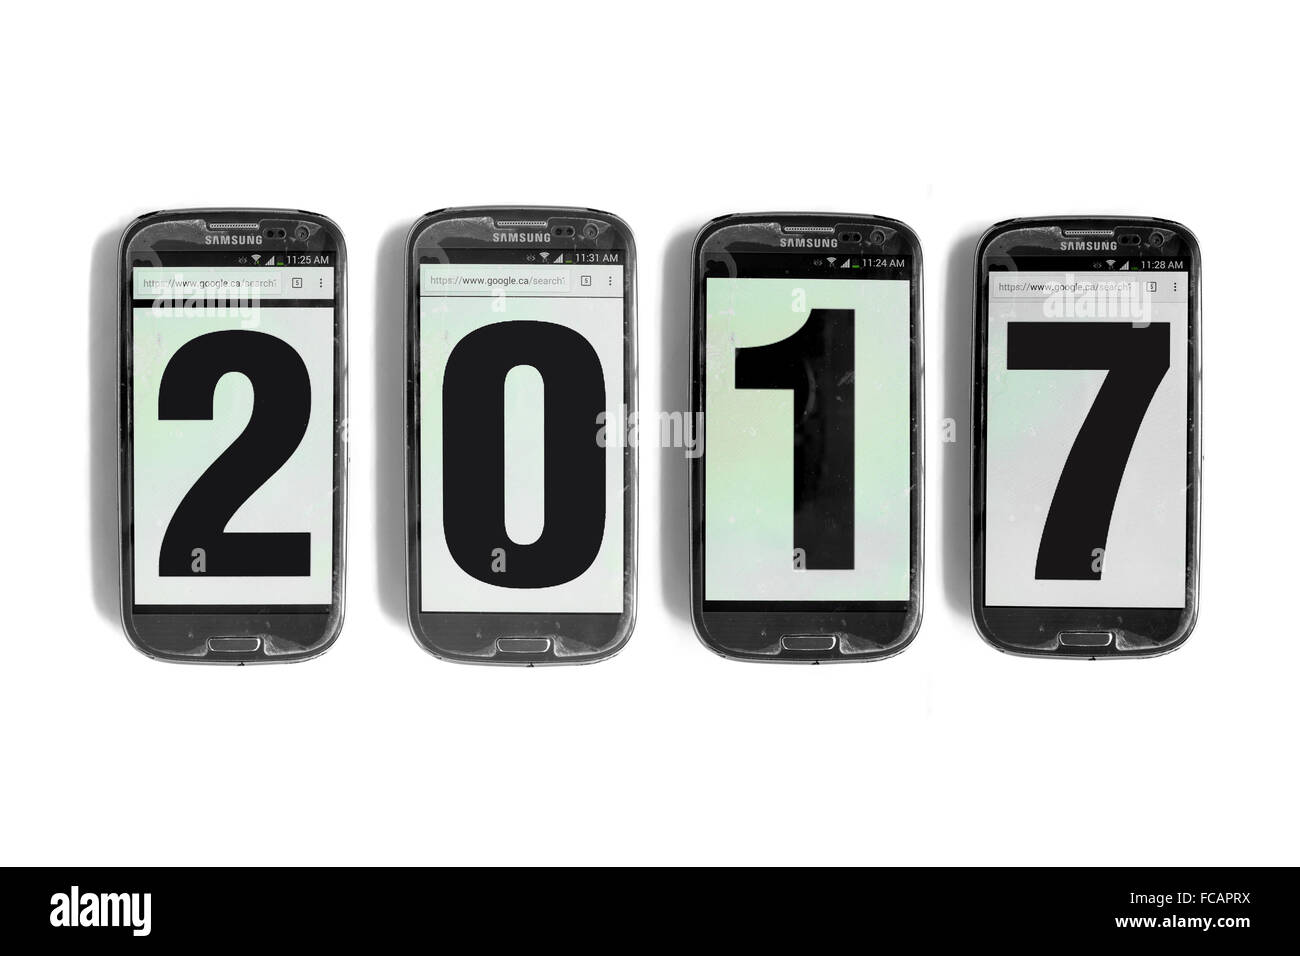 2017 written on the screen of smartphones photographed against a white background. - Stock Image